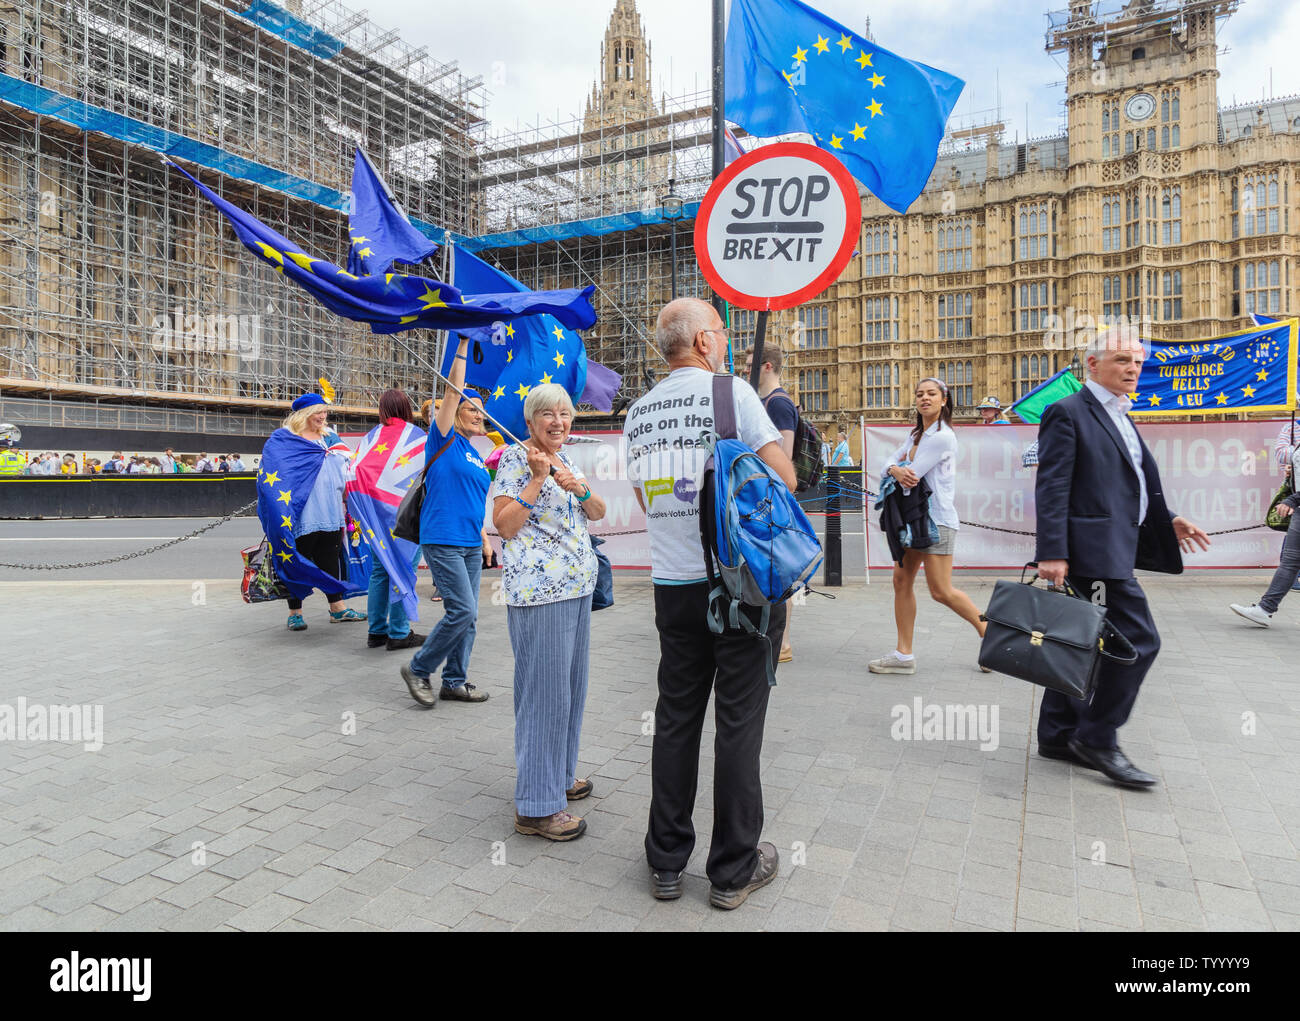 London / UK - June 26th 2019 - Pro-EU anti-Brexit protesters holding Stop Brexit signs and European union flags at a demonstration outside Parliament - Stock Image